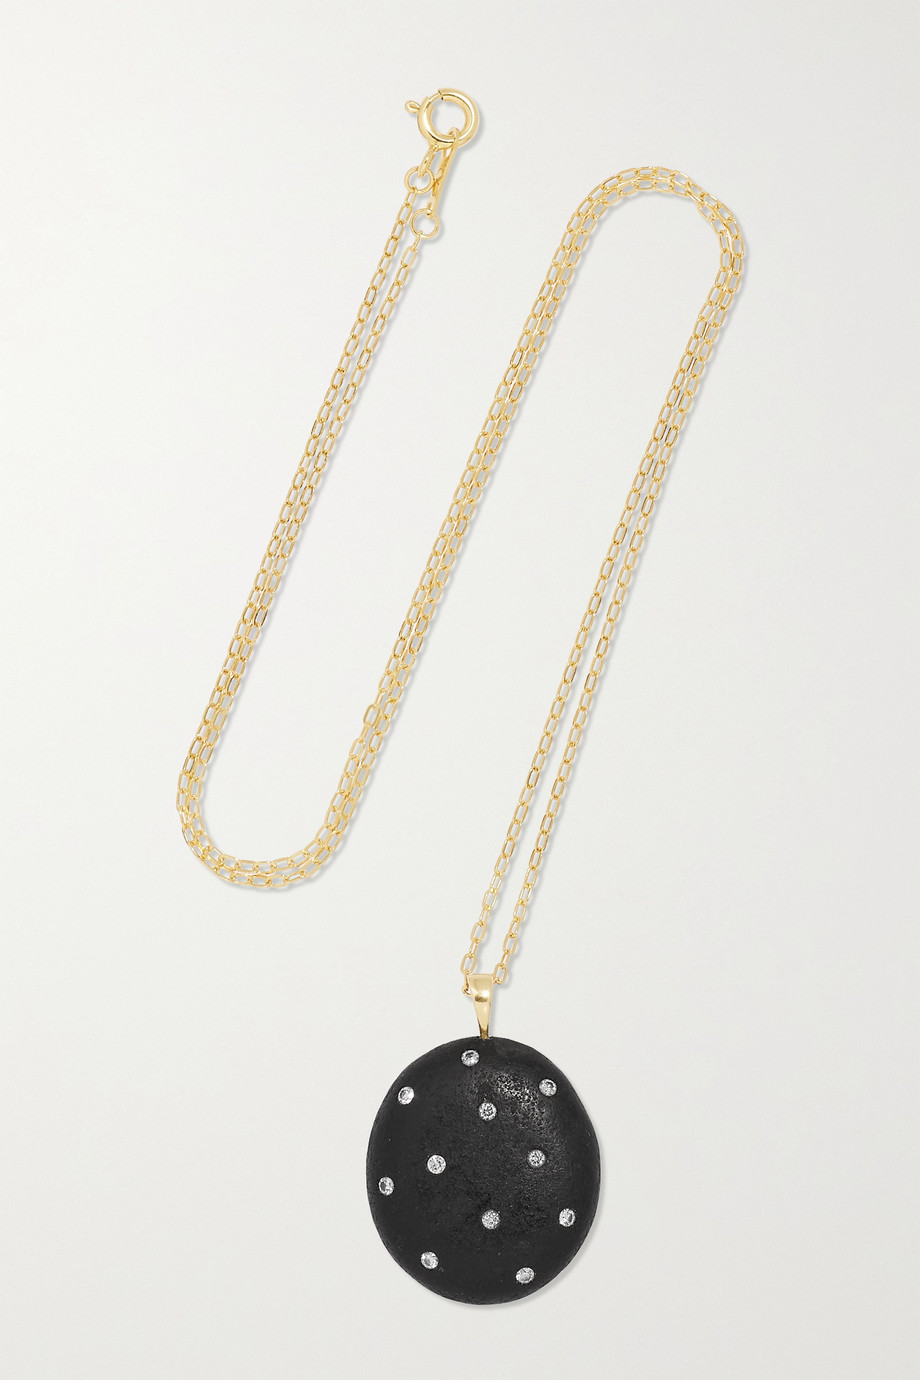 CVC Stones Collier en or 18 carats, pierre et diamants Midnight